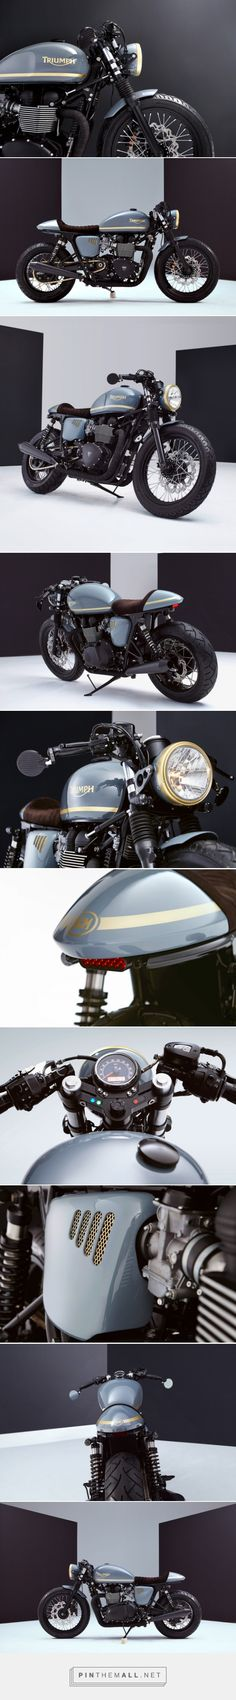 Turkish Delight: A Bonneville custom from Bunker | Bike EXIF